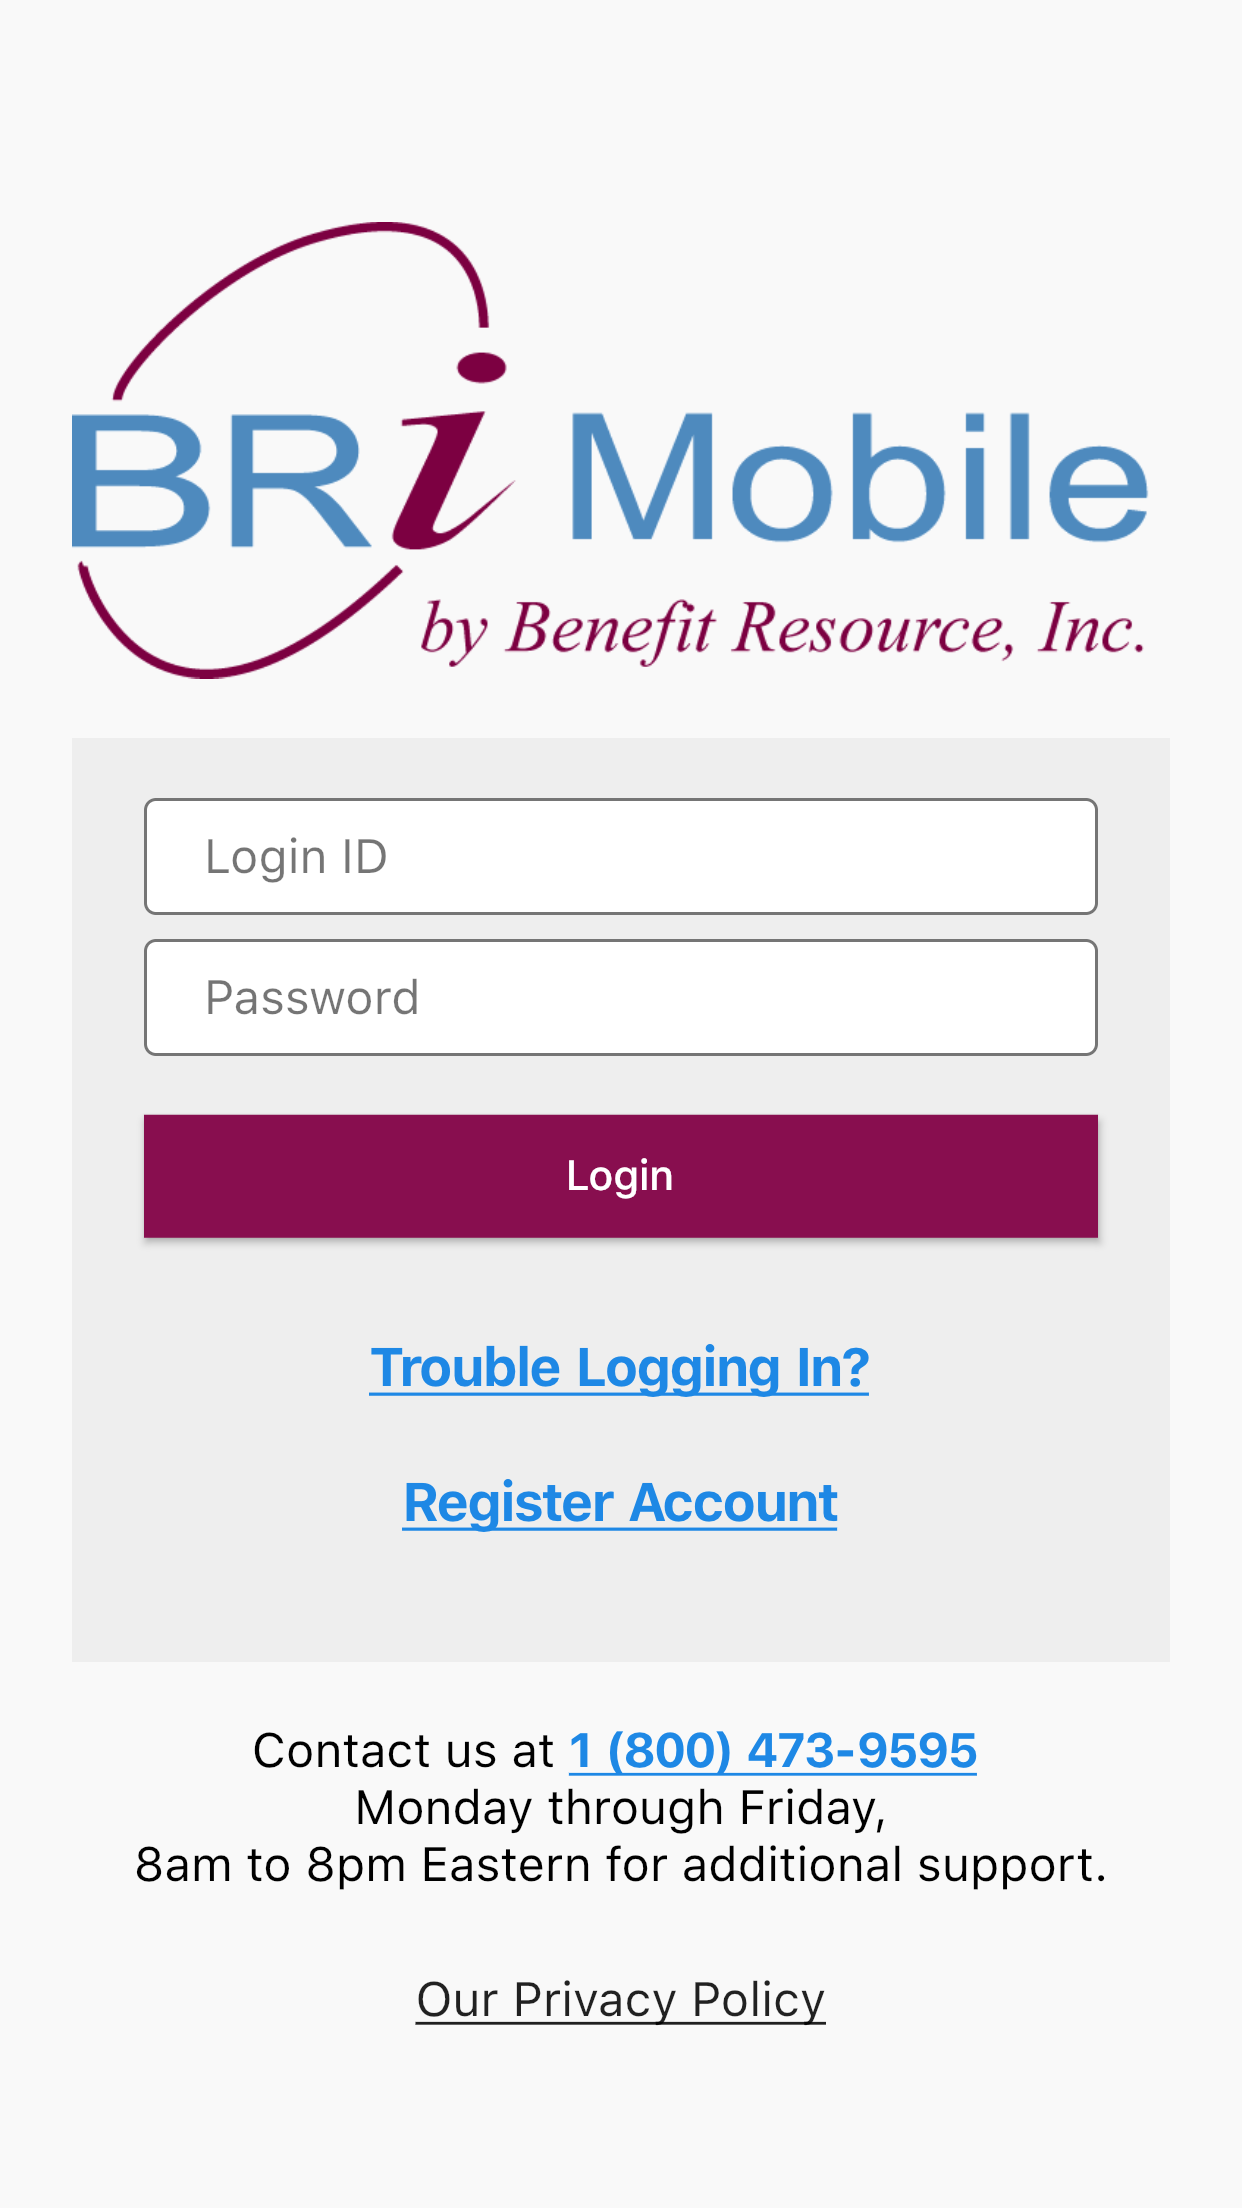 BRiMobile Login